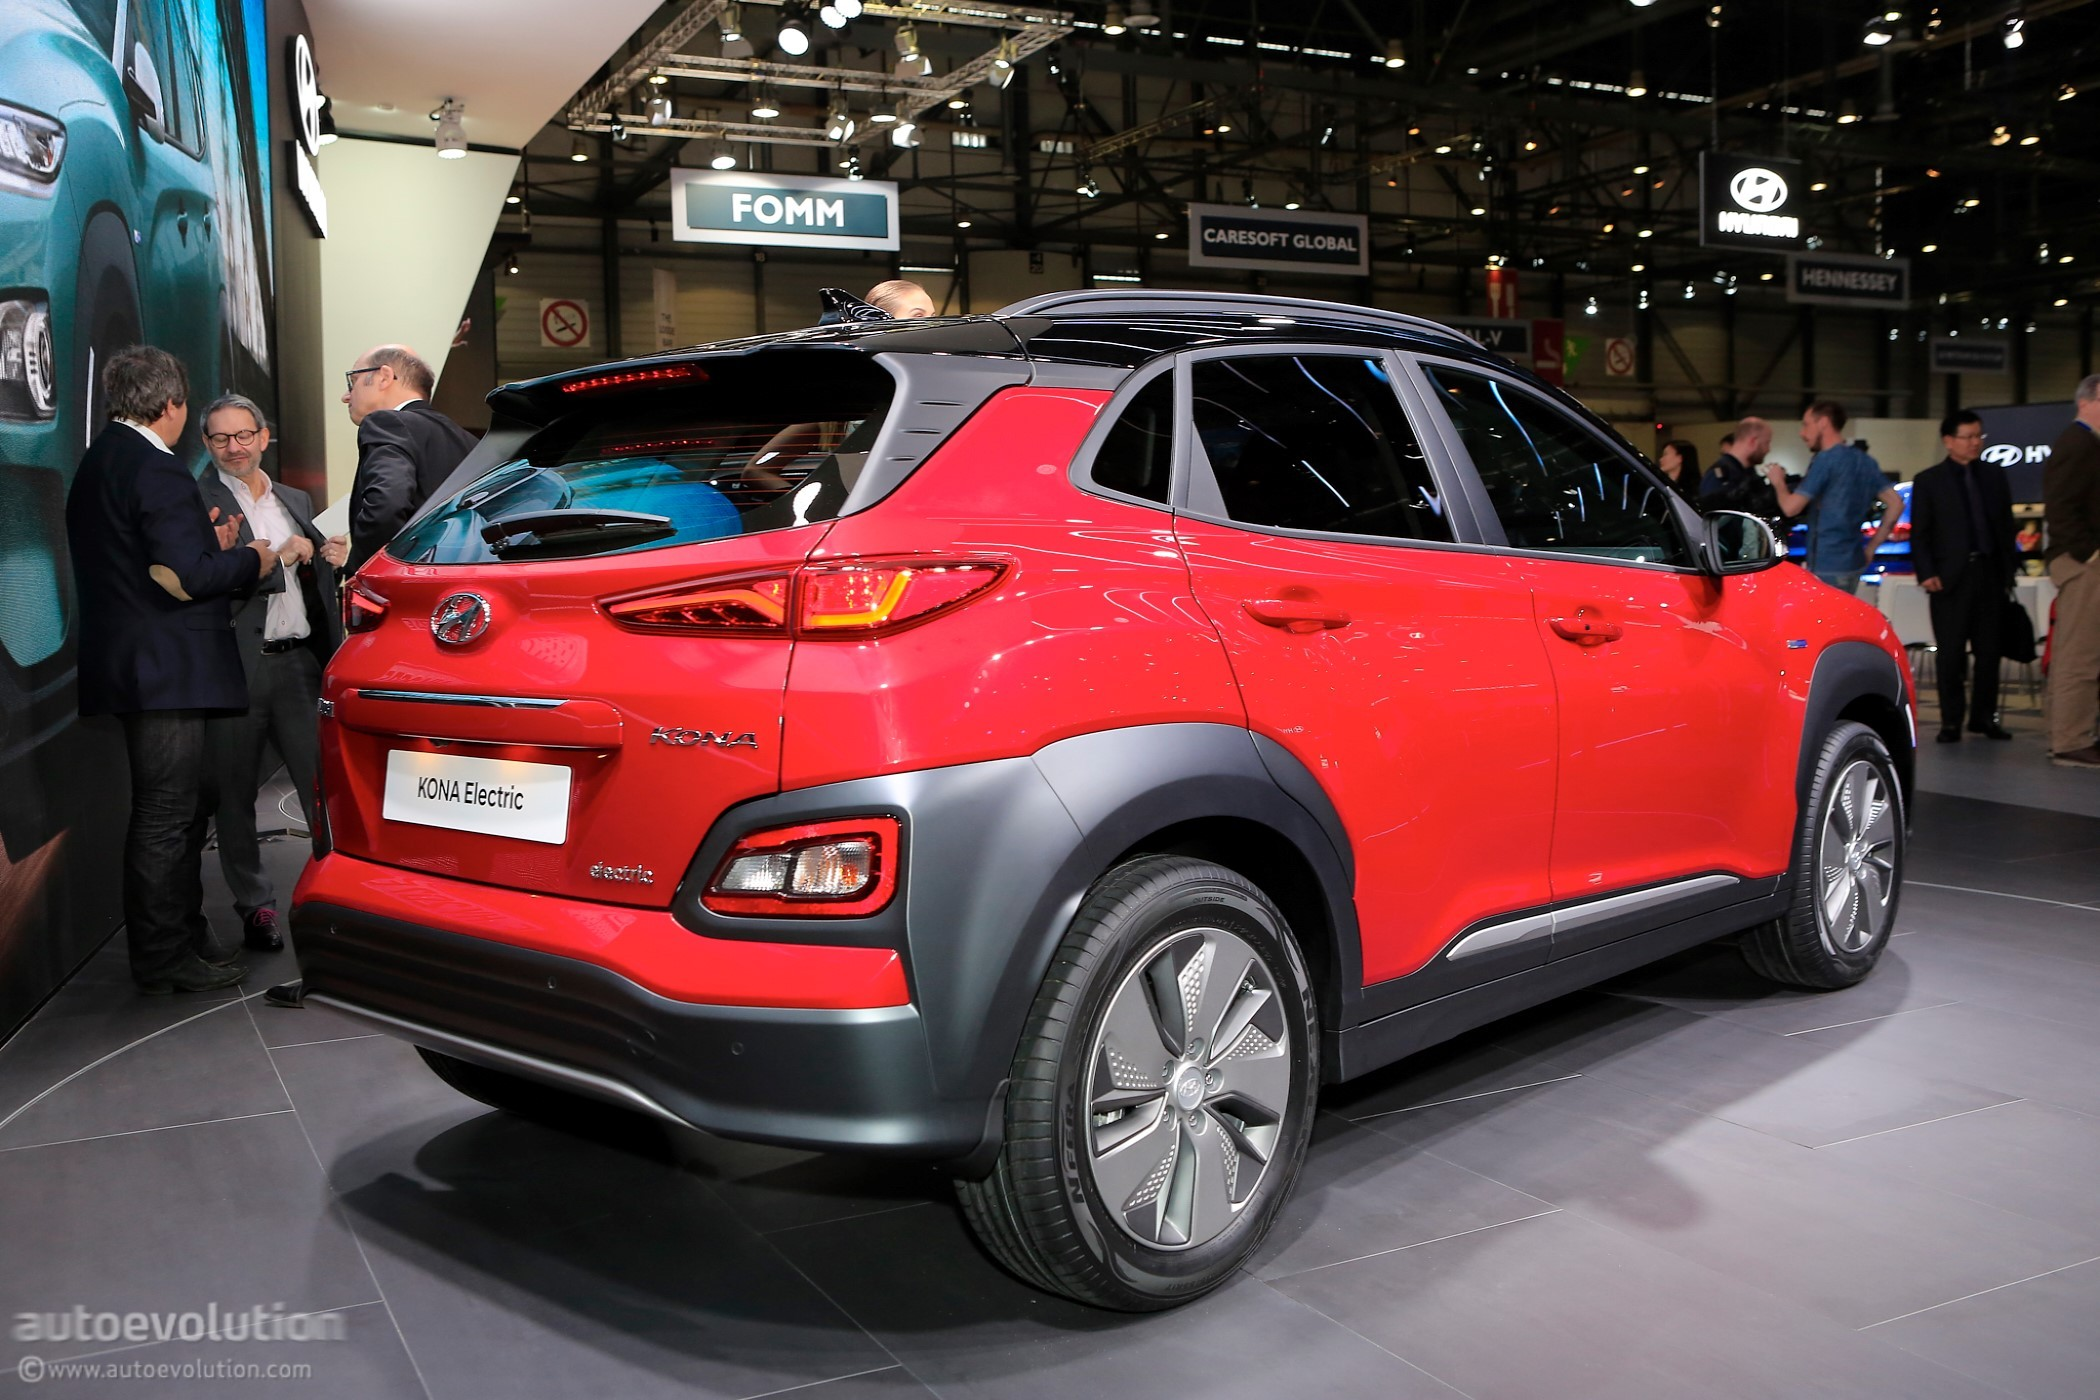 Hyundai Pulls The Plug On ICE In Geneva With The All-New ...